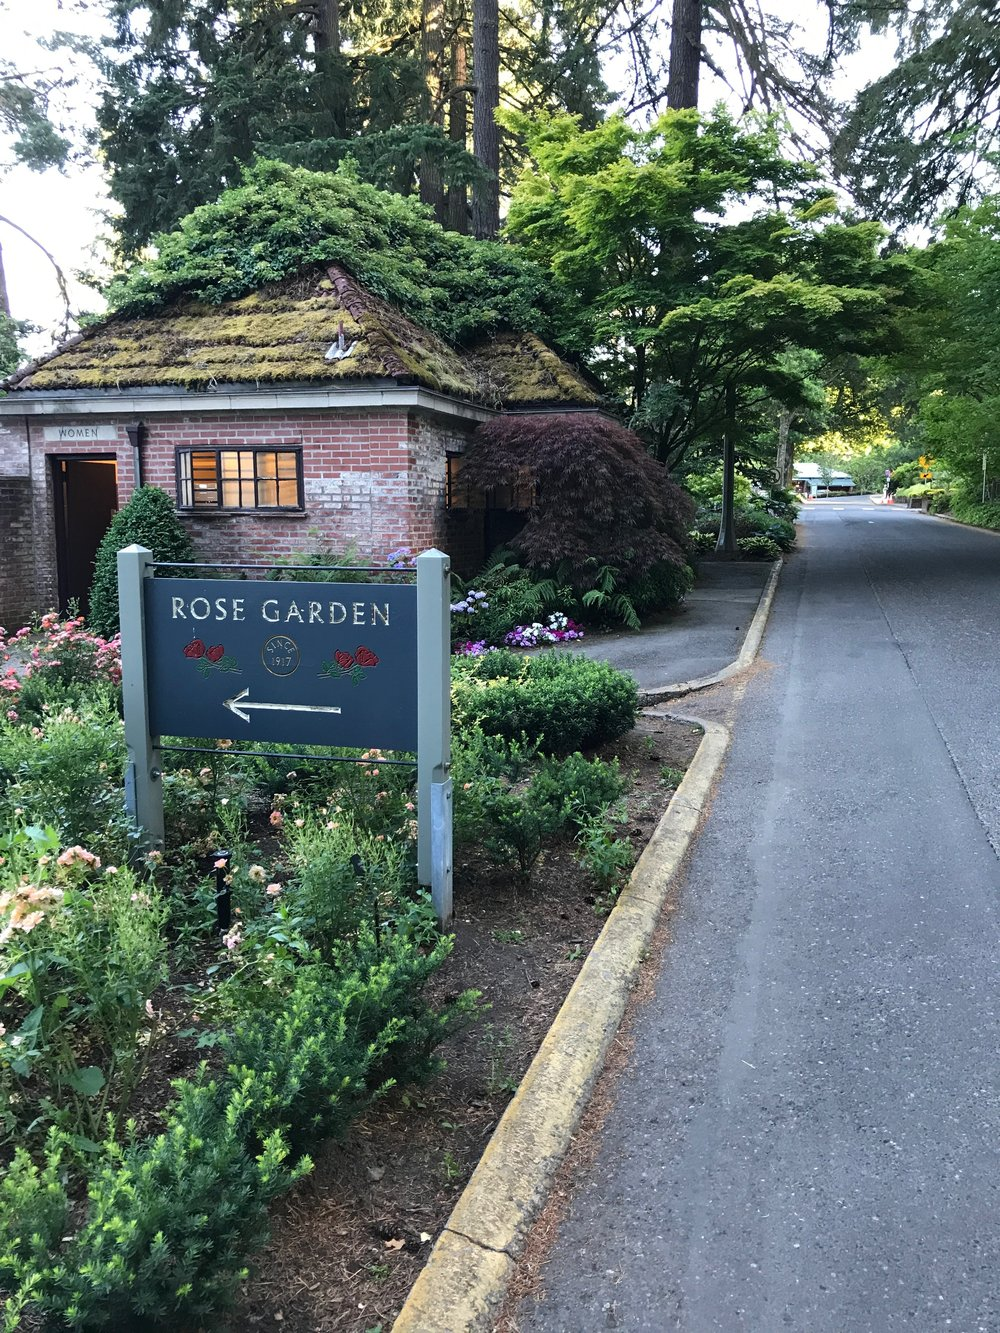 To celebrate our first official day in Portland, we visited the International Rose Test Garden. Keep scrolling to see all the beautiful pictures, and all the different kinds of roses.